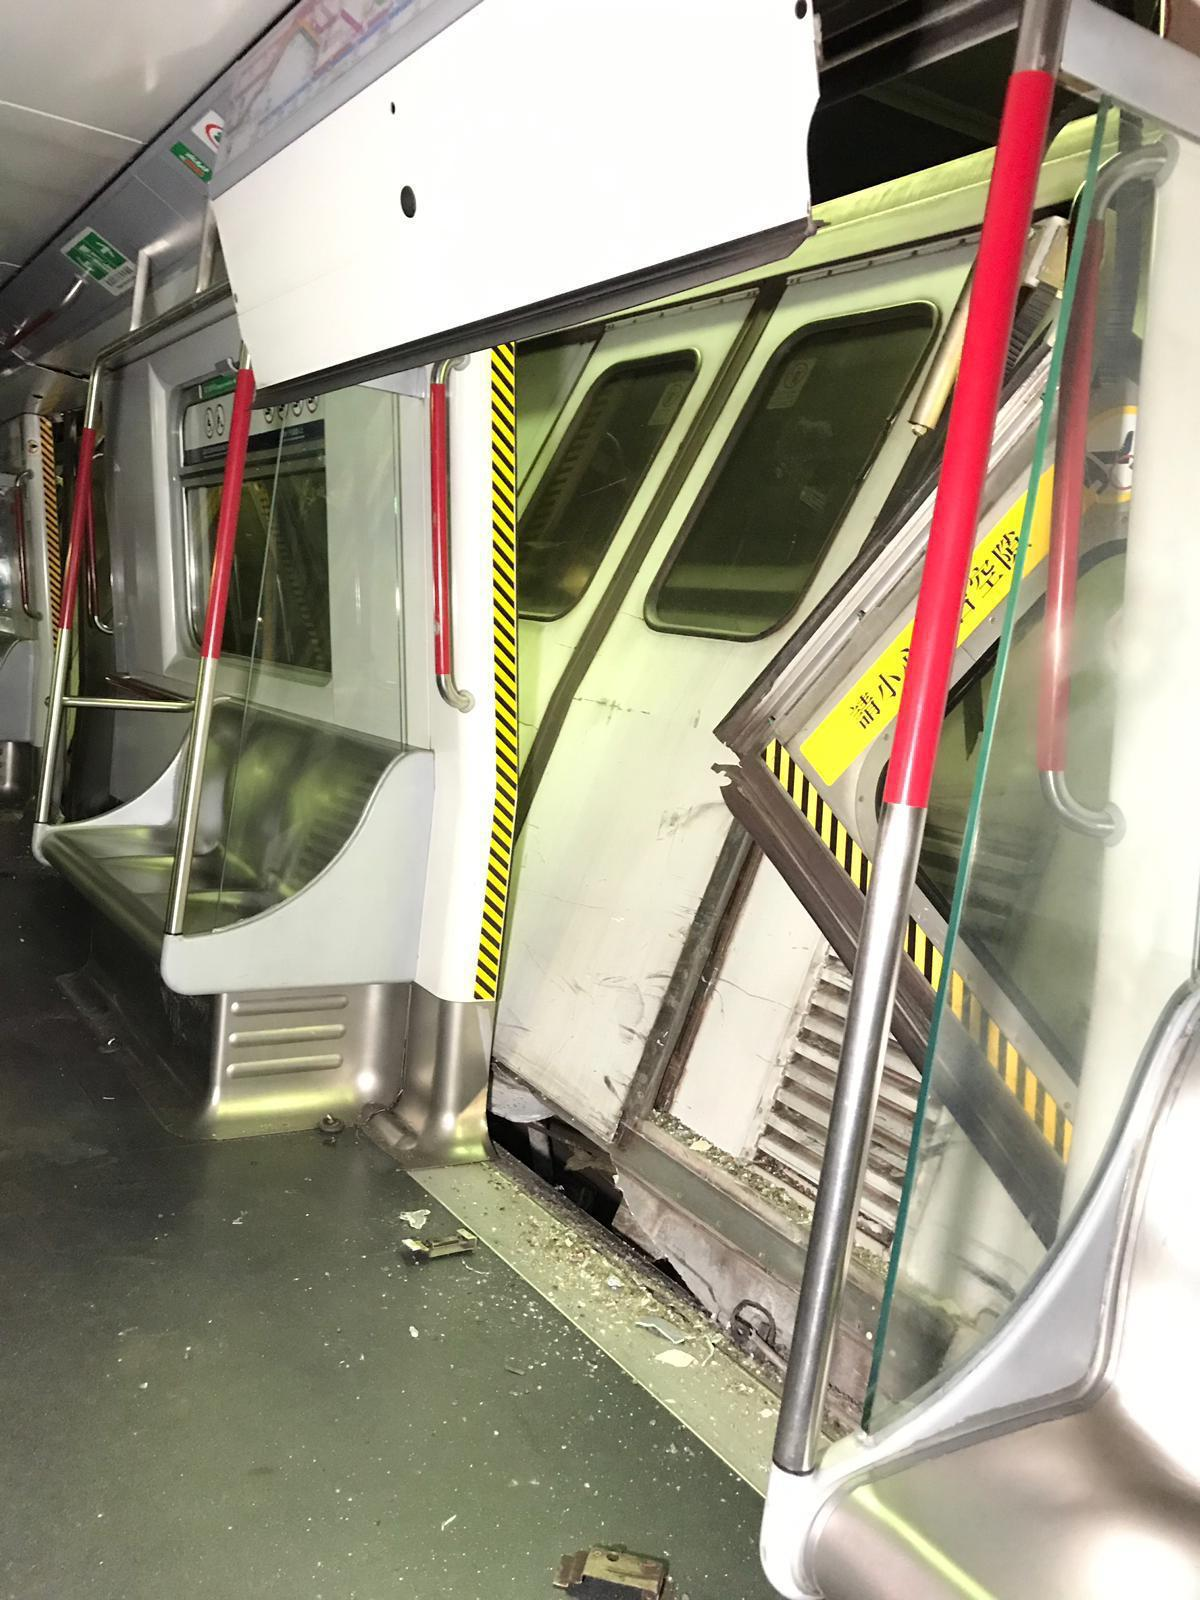 1 driver injured as Hong Kong MTR trains collide